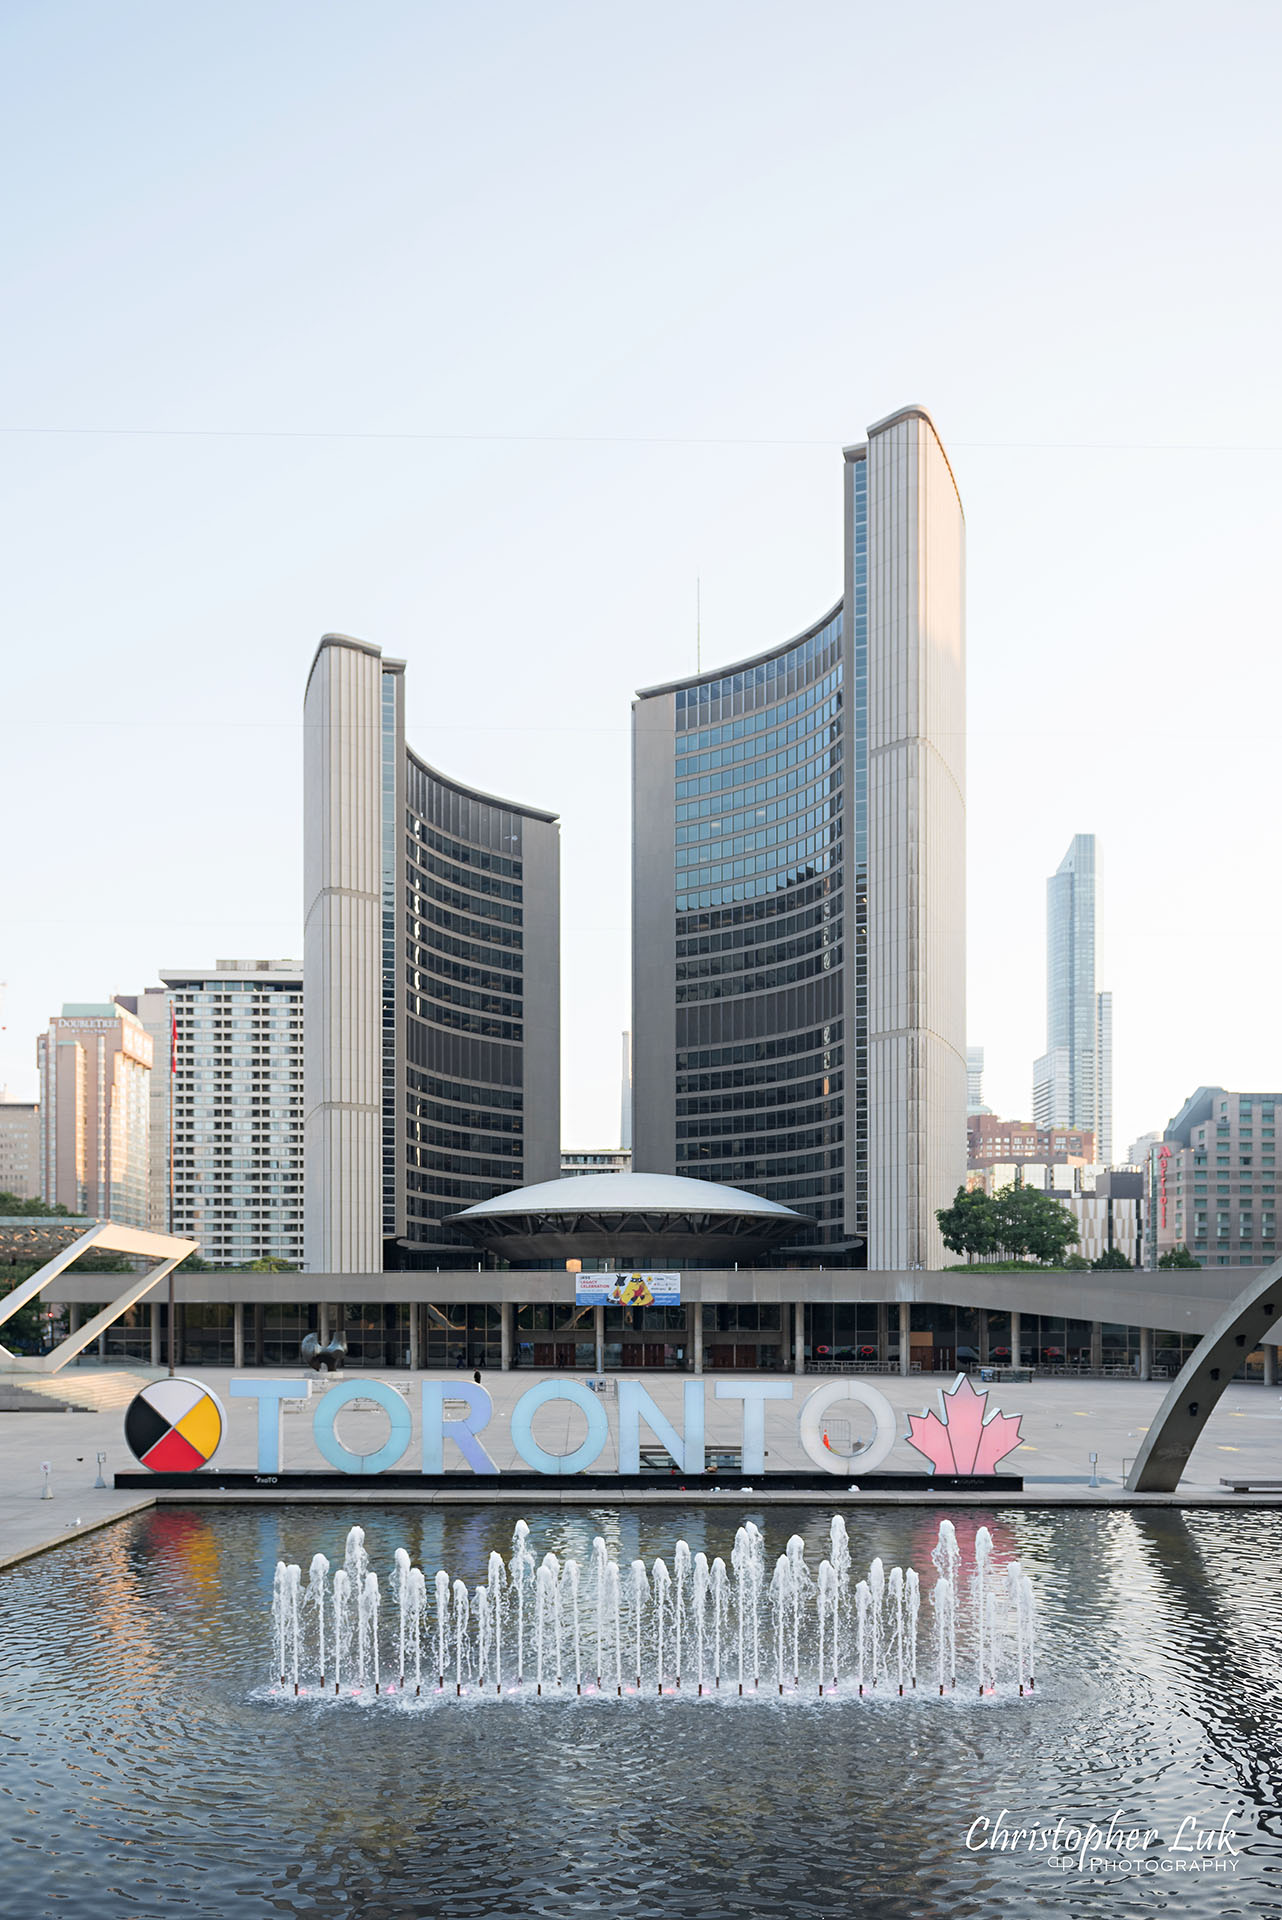 Christopher Luk Wedding Photographer Toronto City Hall Nathan Philips Square Elevated Bridge Arches Archway Wide Landscape Toronto 3D Sign Water Pool Fountain Feature Portrait